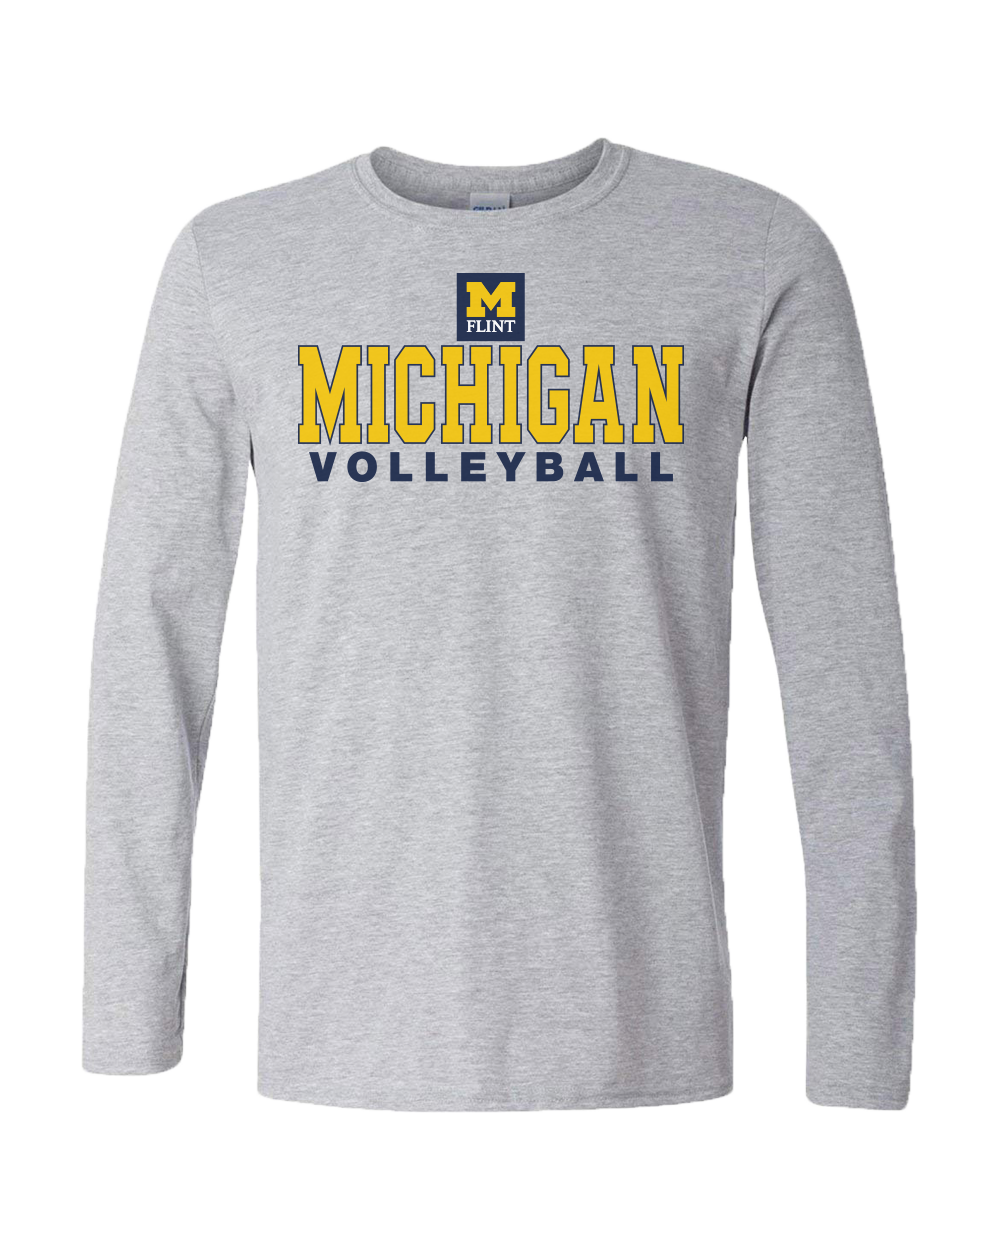 UNISEX Michigan Volleyball Design Sport Grey Long Sleeve Tee